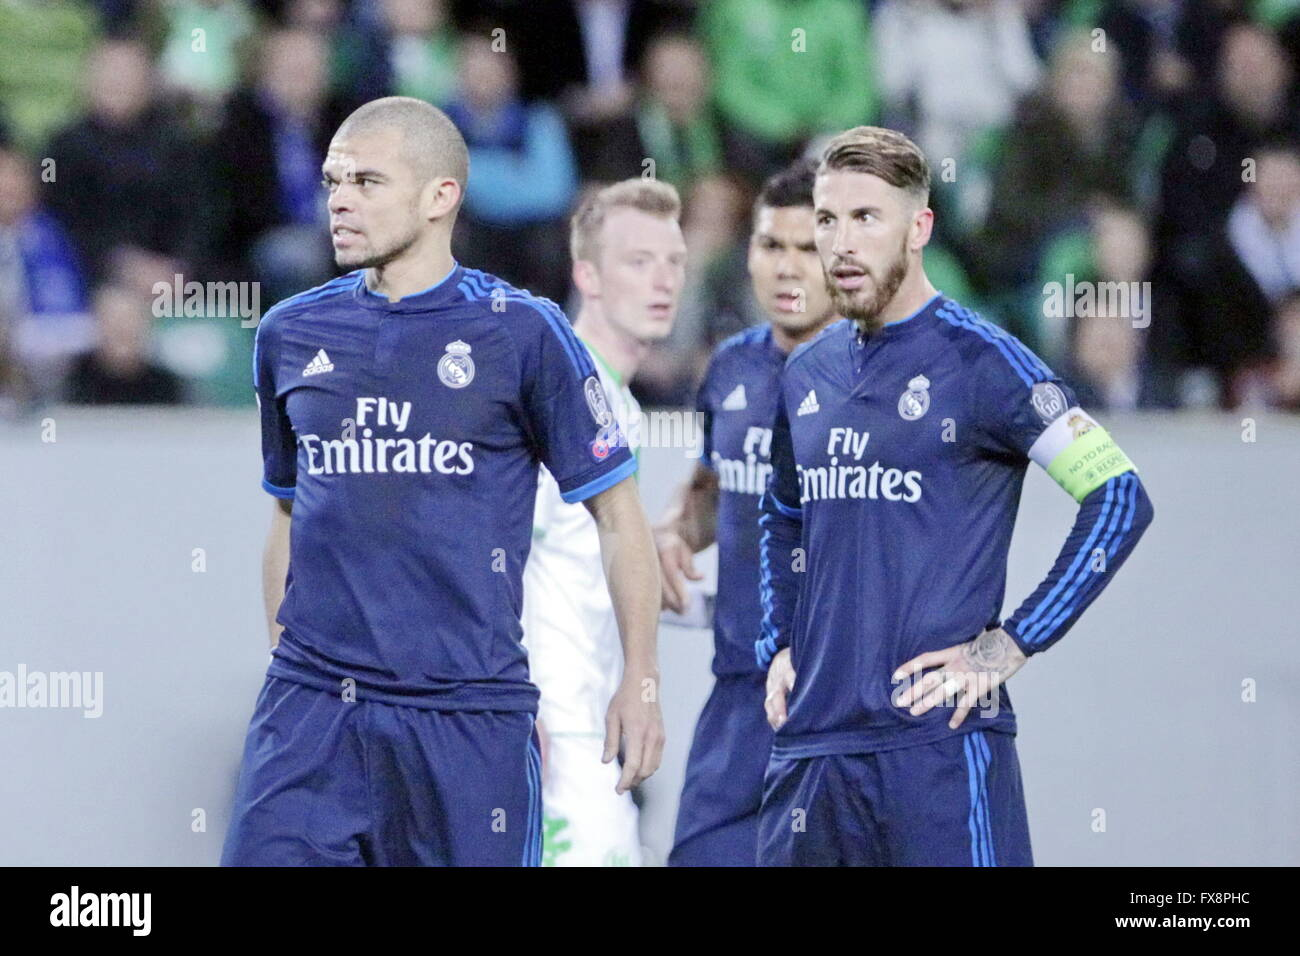 Pépé and Sergio Ramos in action during the league champion Wolfsburg match - Real Madrid - Stock Image